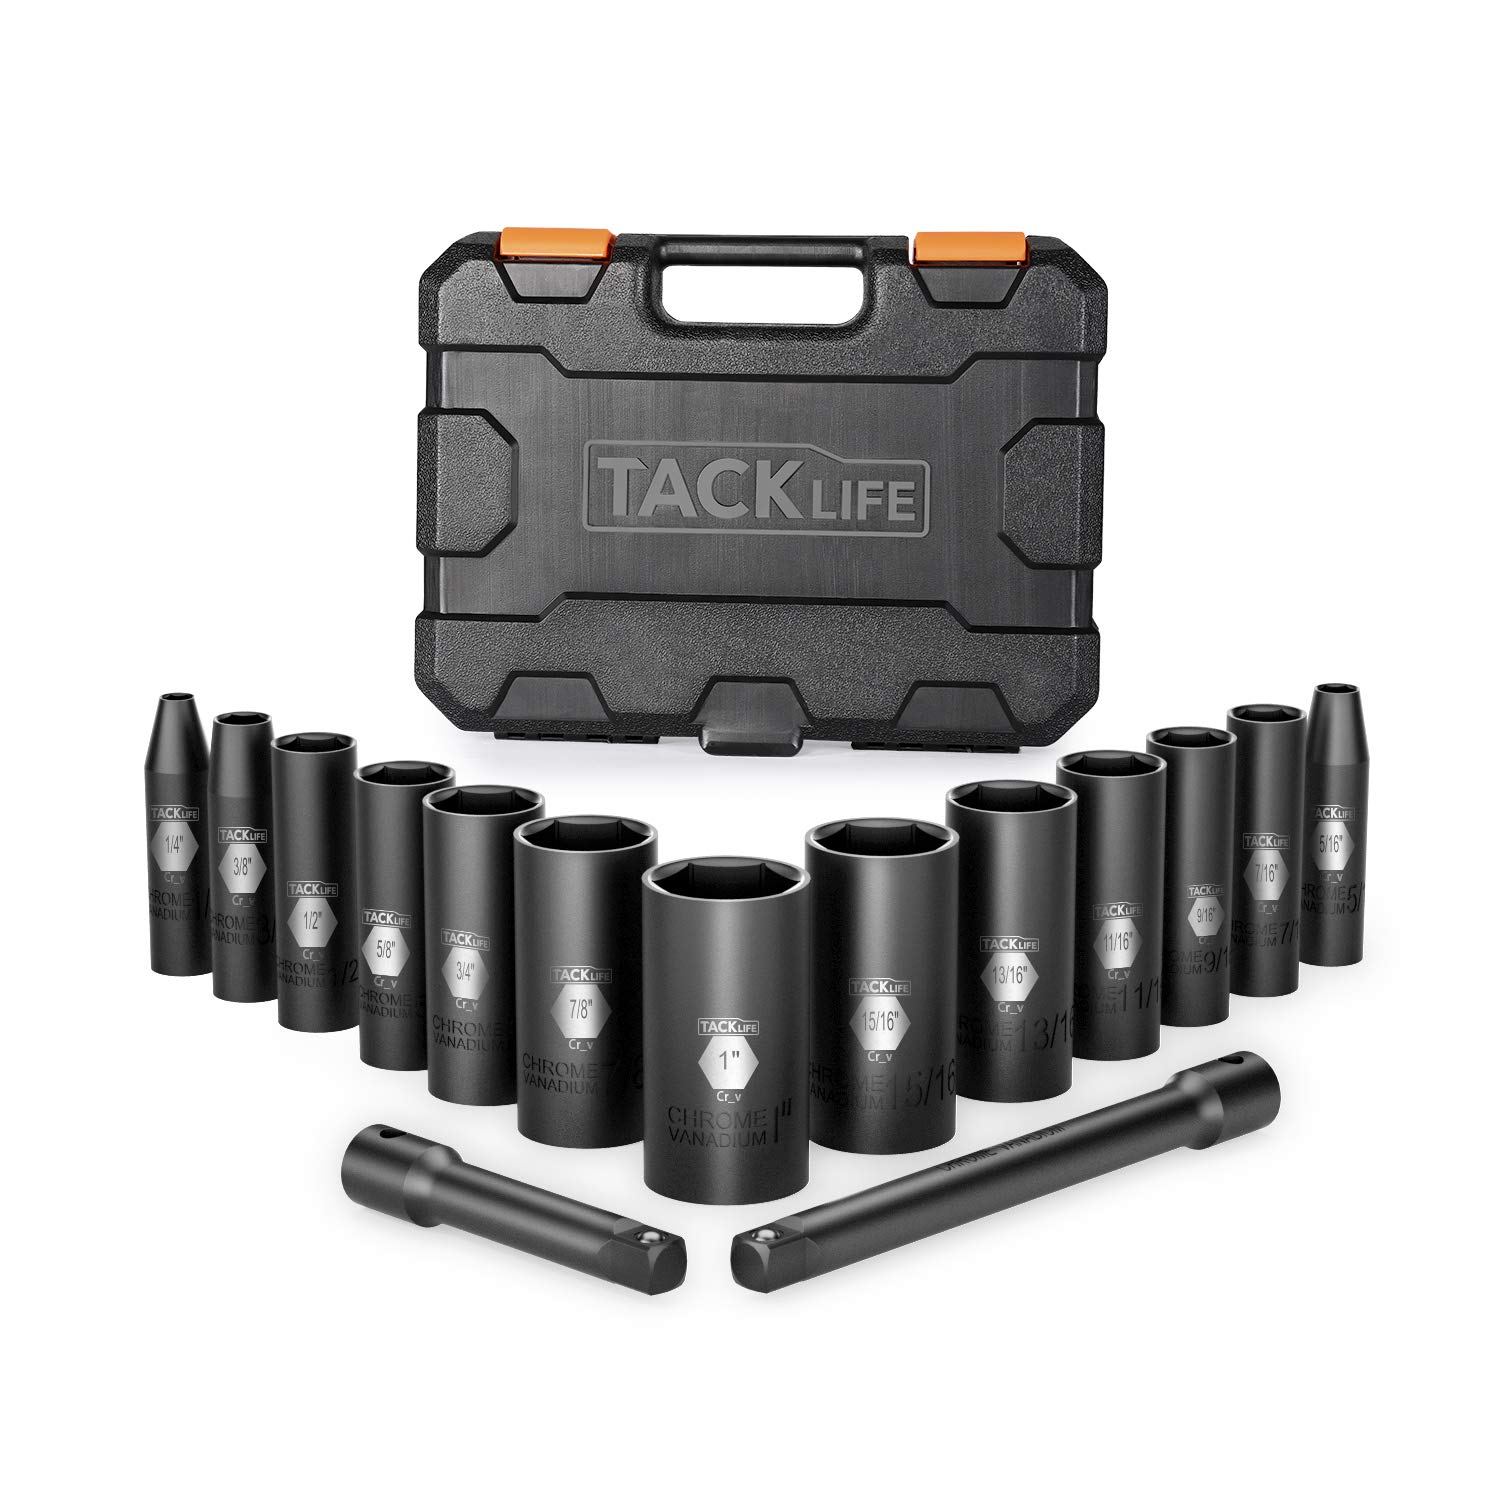 CR-V Steel Heavy Duty Storage Case 6-Point Tacklife 3//8-Inch Drive Deep Impact Socket Set 15pcs 3 and 6 extensions -HIS5A SAE